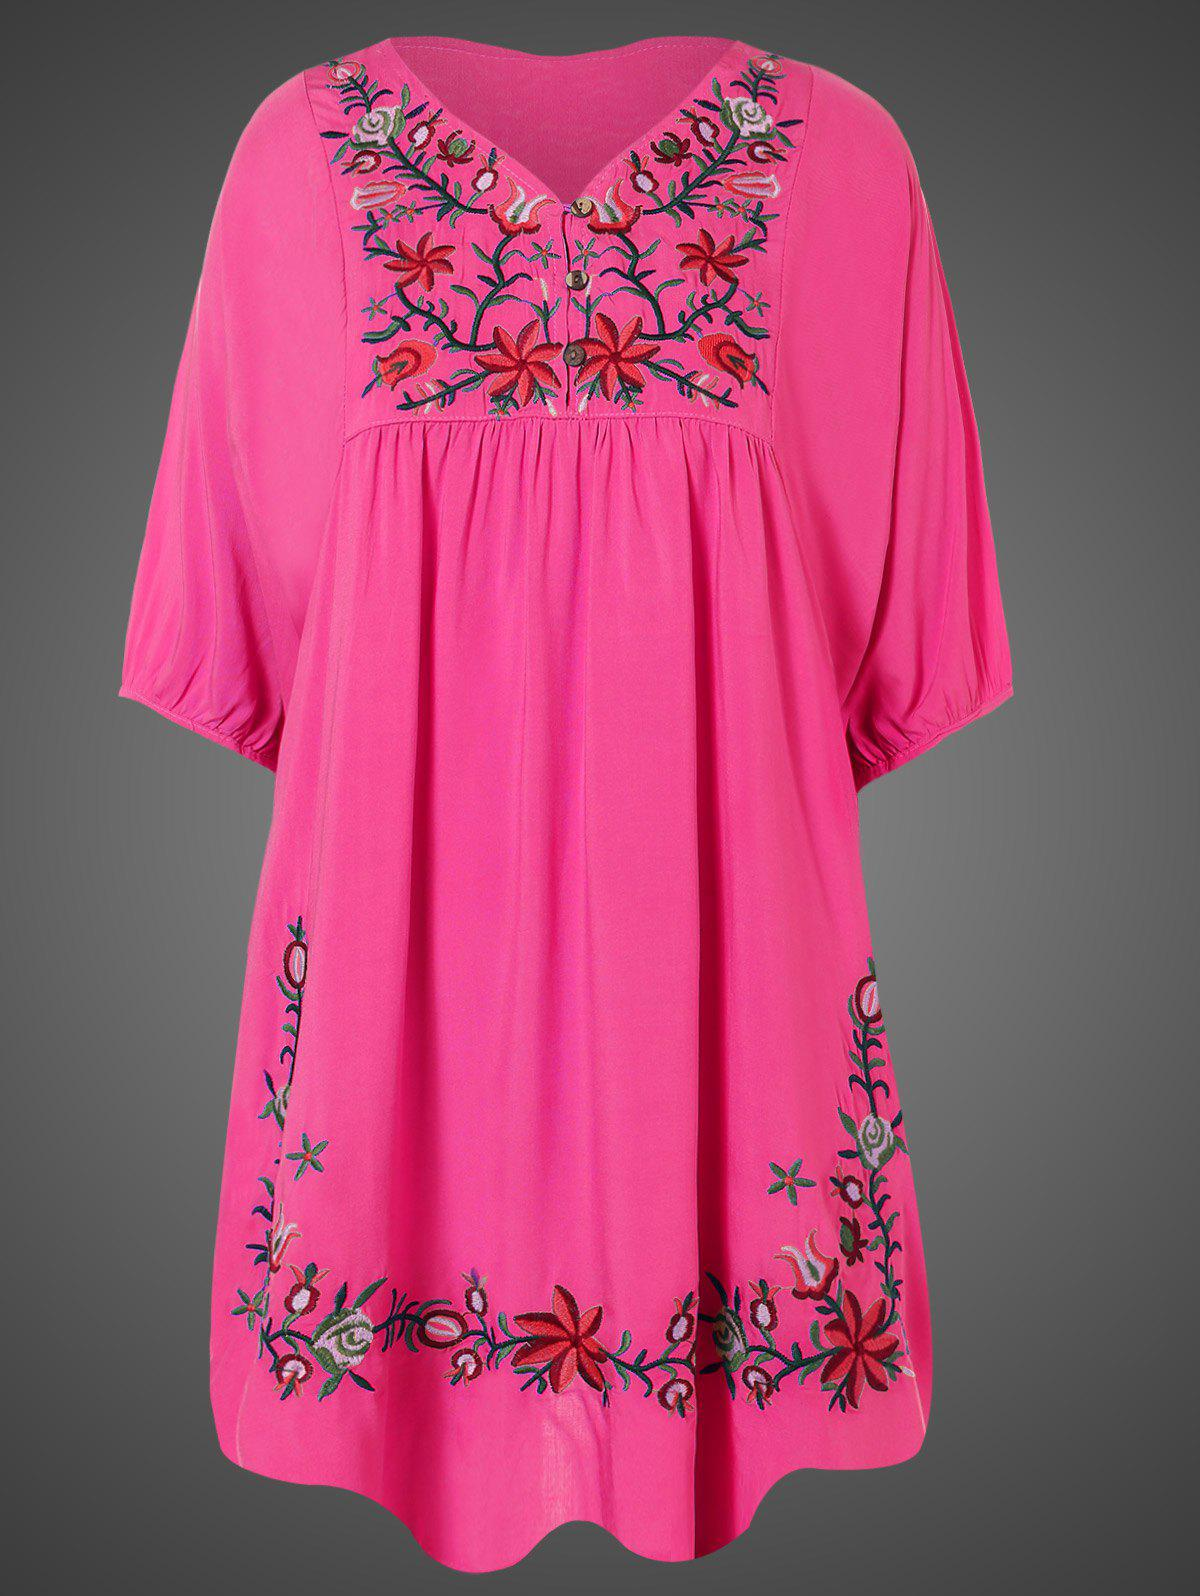 Chic Plus Size Embroidered Casual Tunic Dress With Short Sleeves